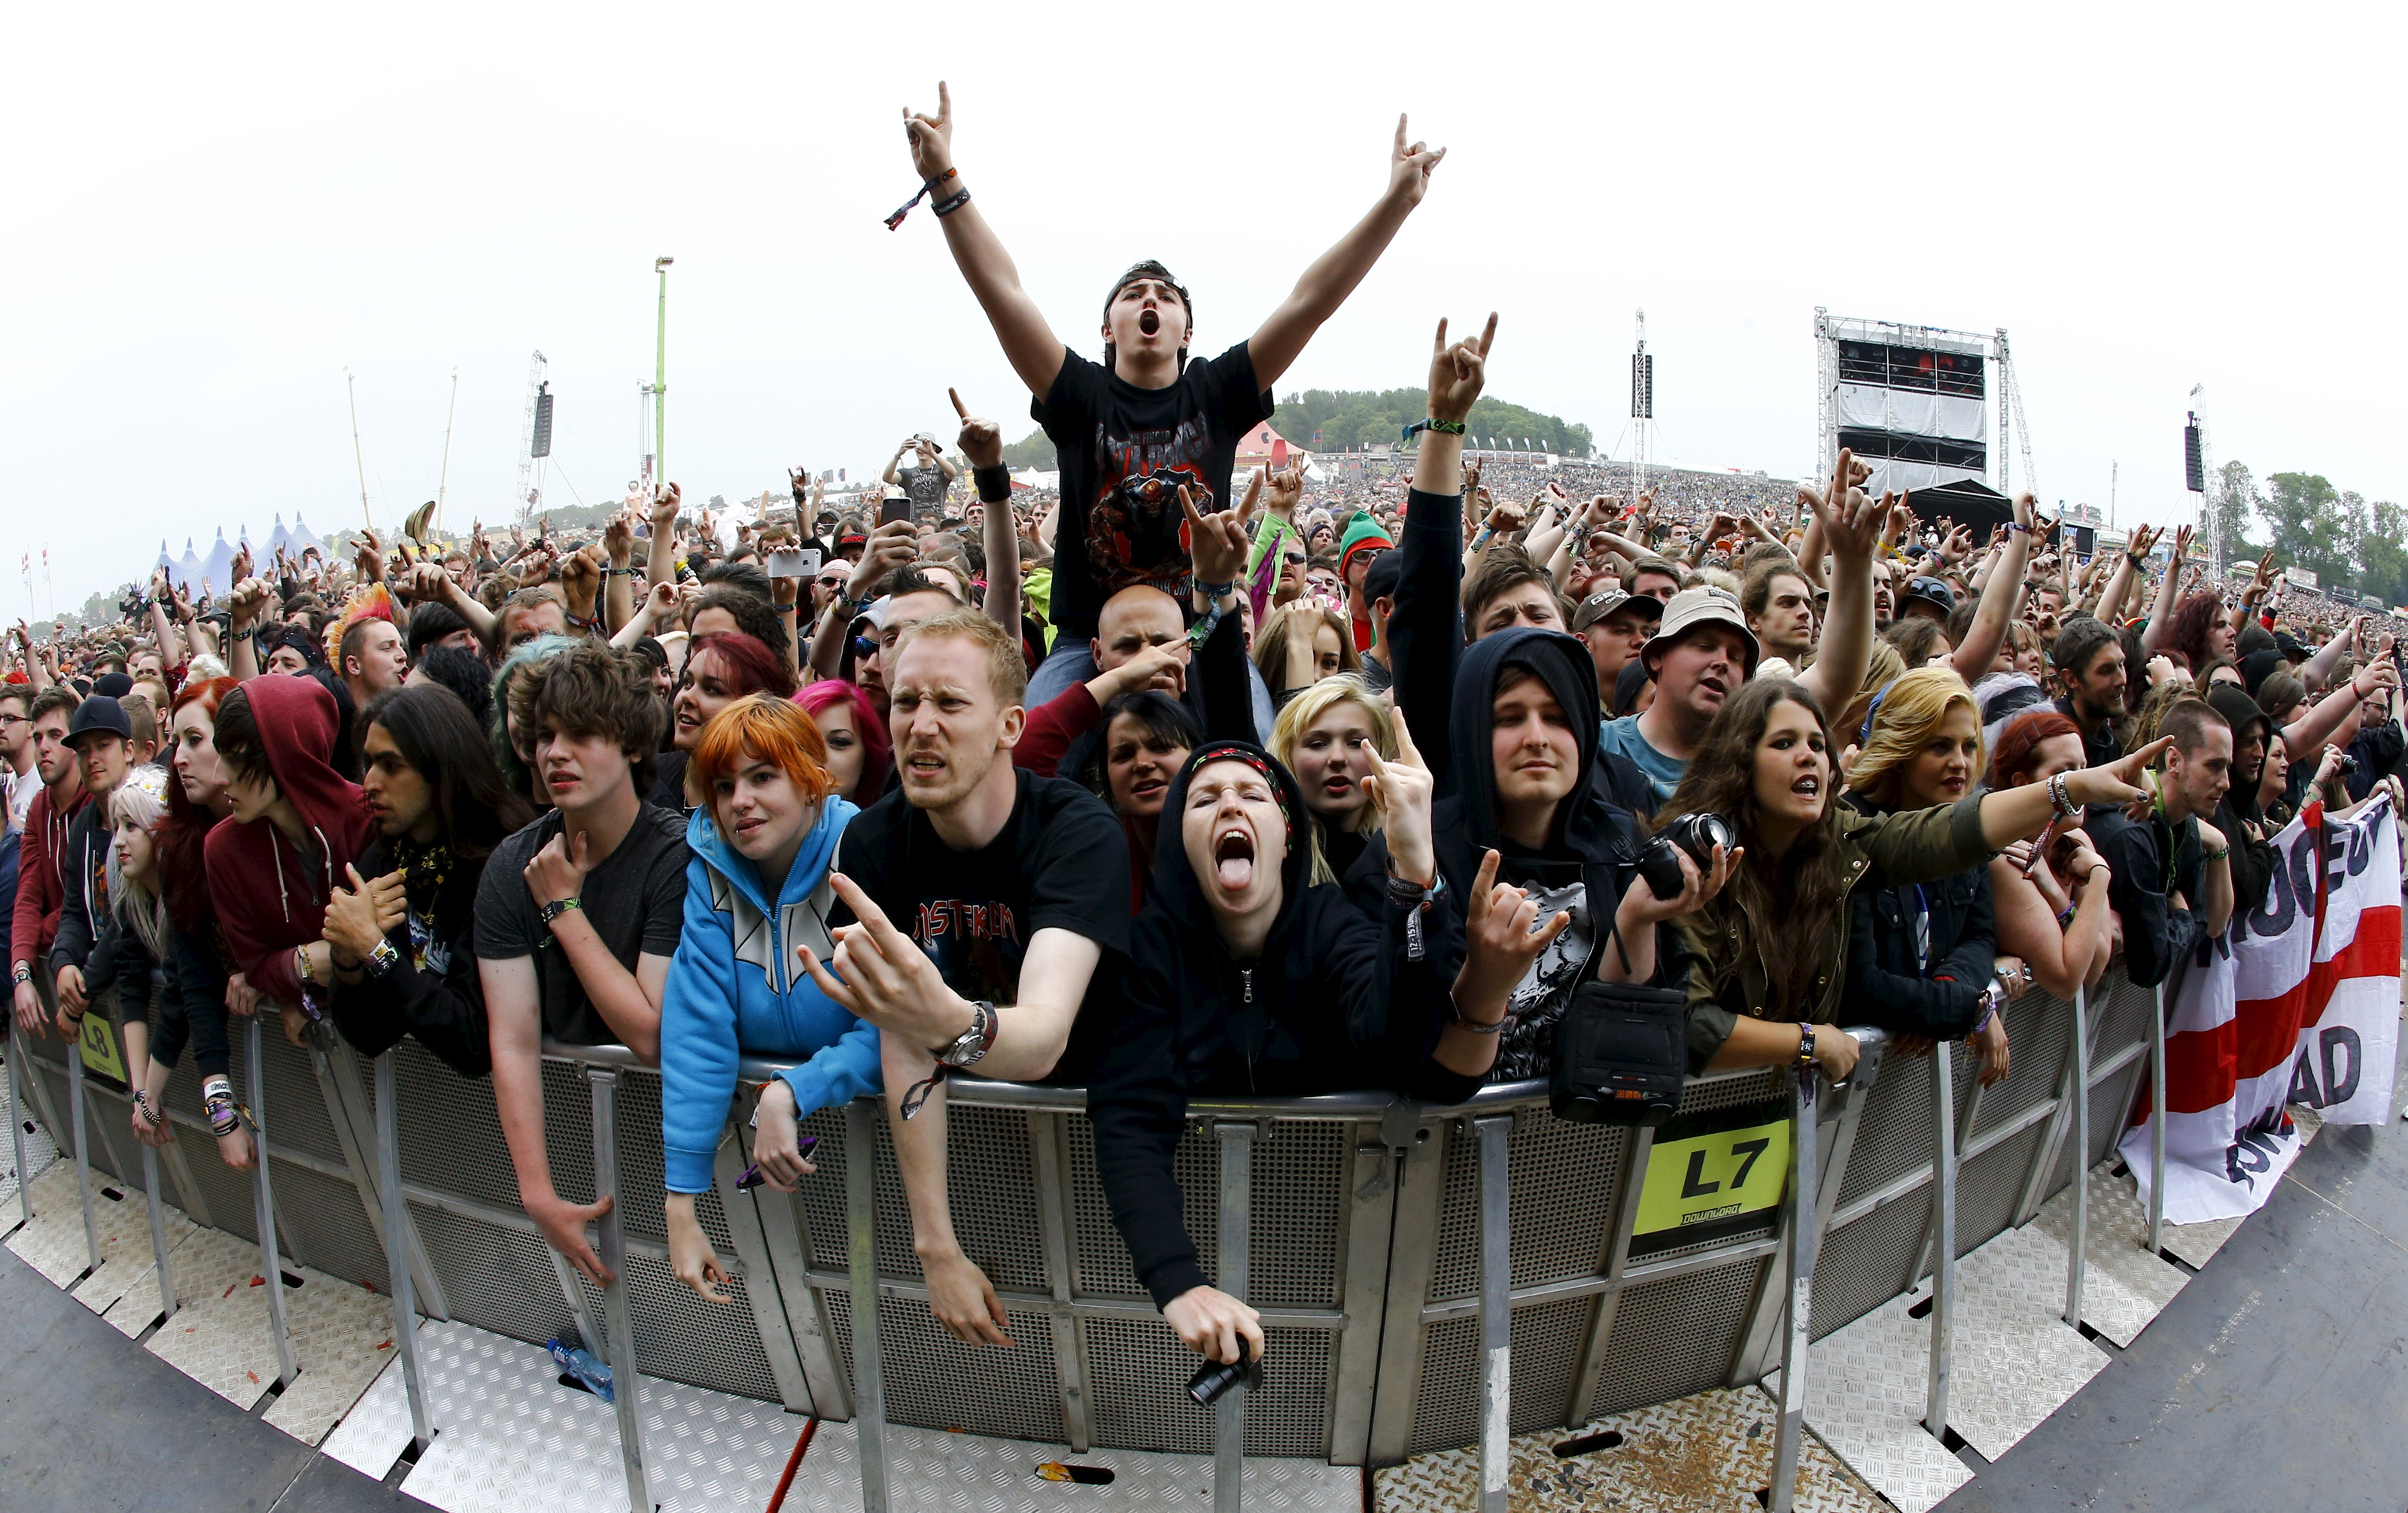 El público del Download Festival de Donington por Darren Staples © Darren Staples/ Reuters